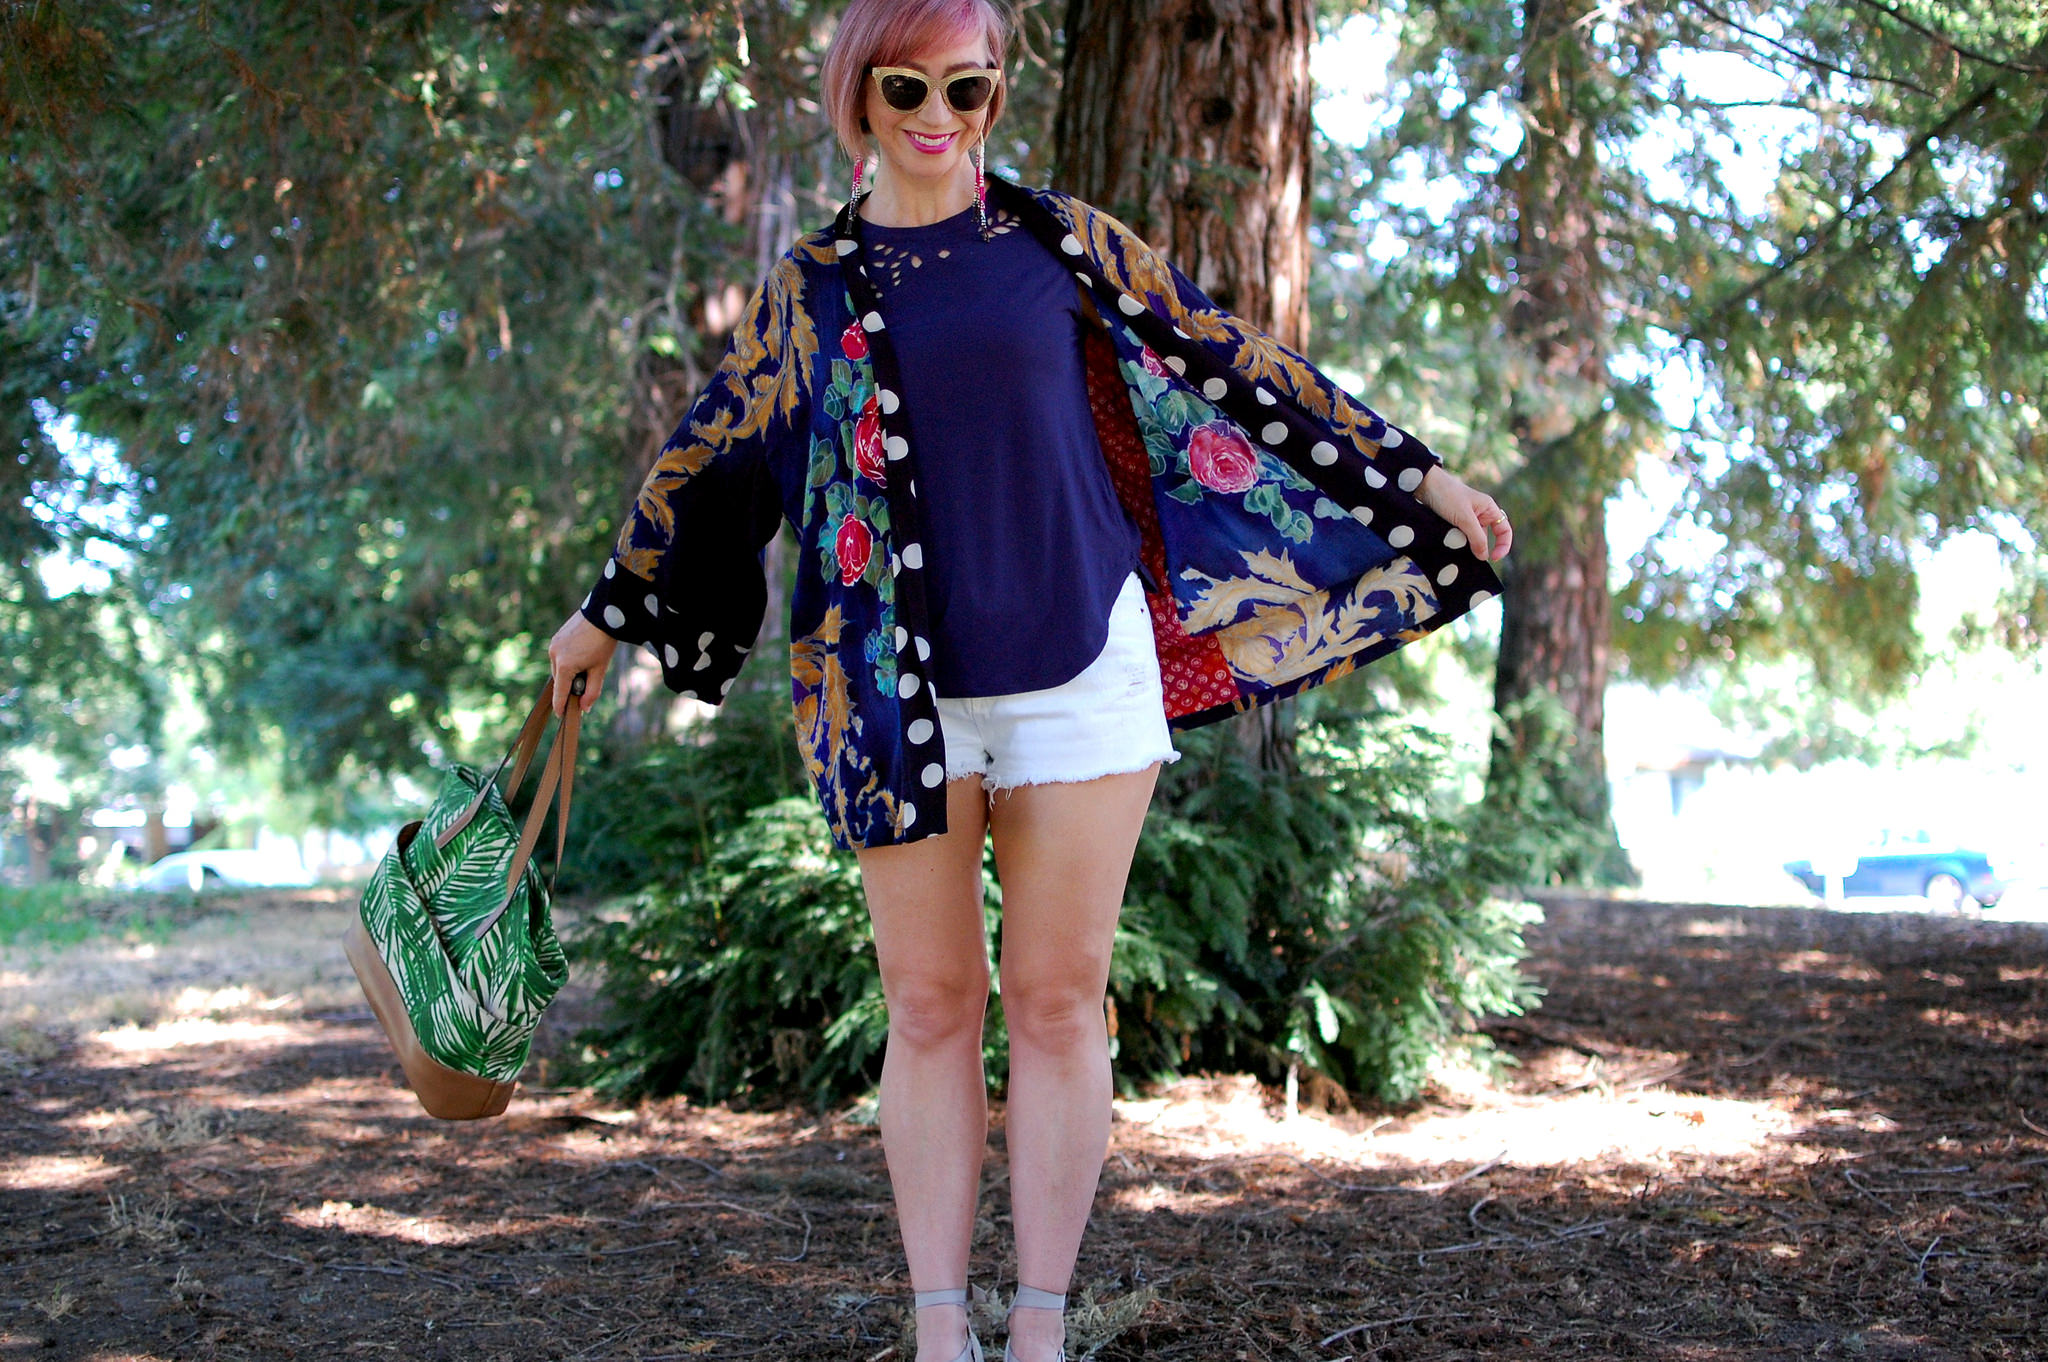 kimono pattern mix daily outfit blog ootd whatiwore2day